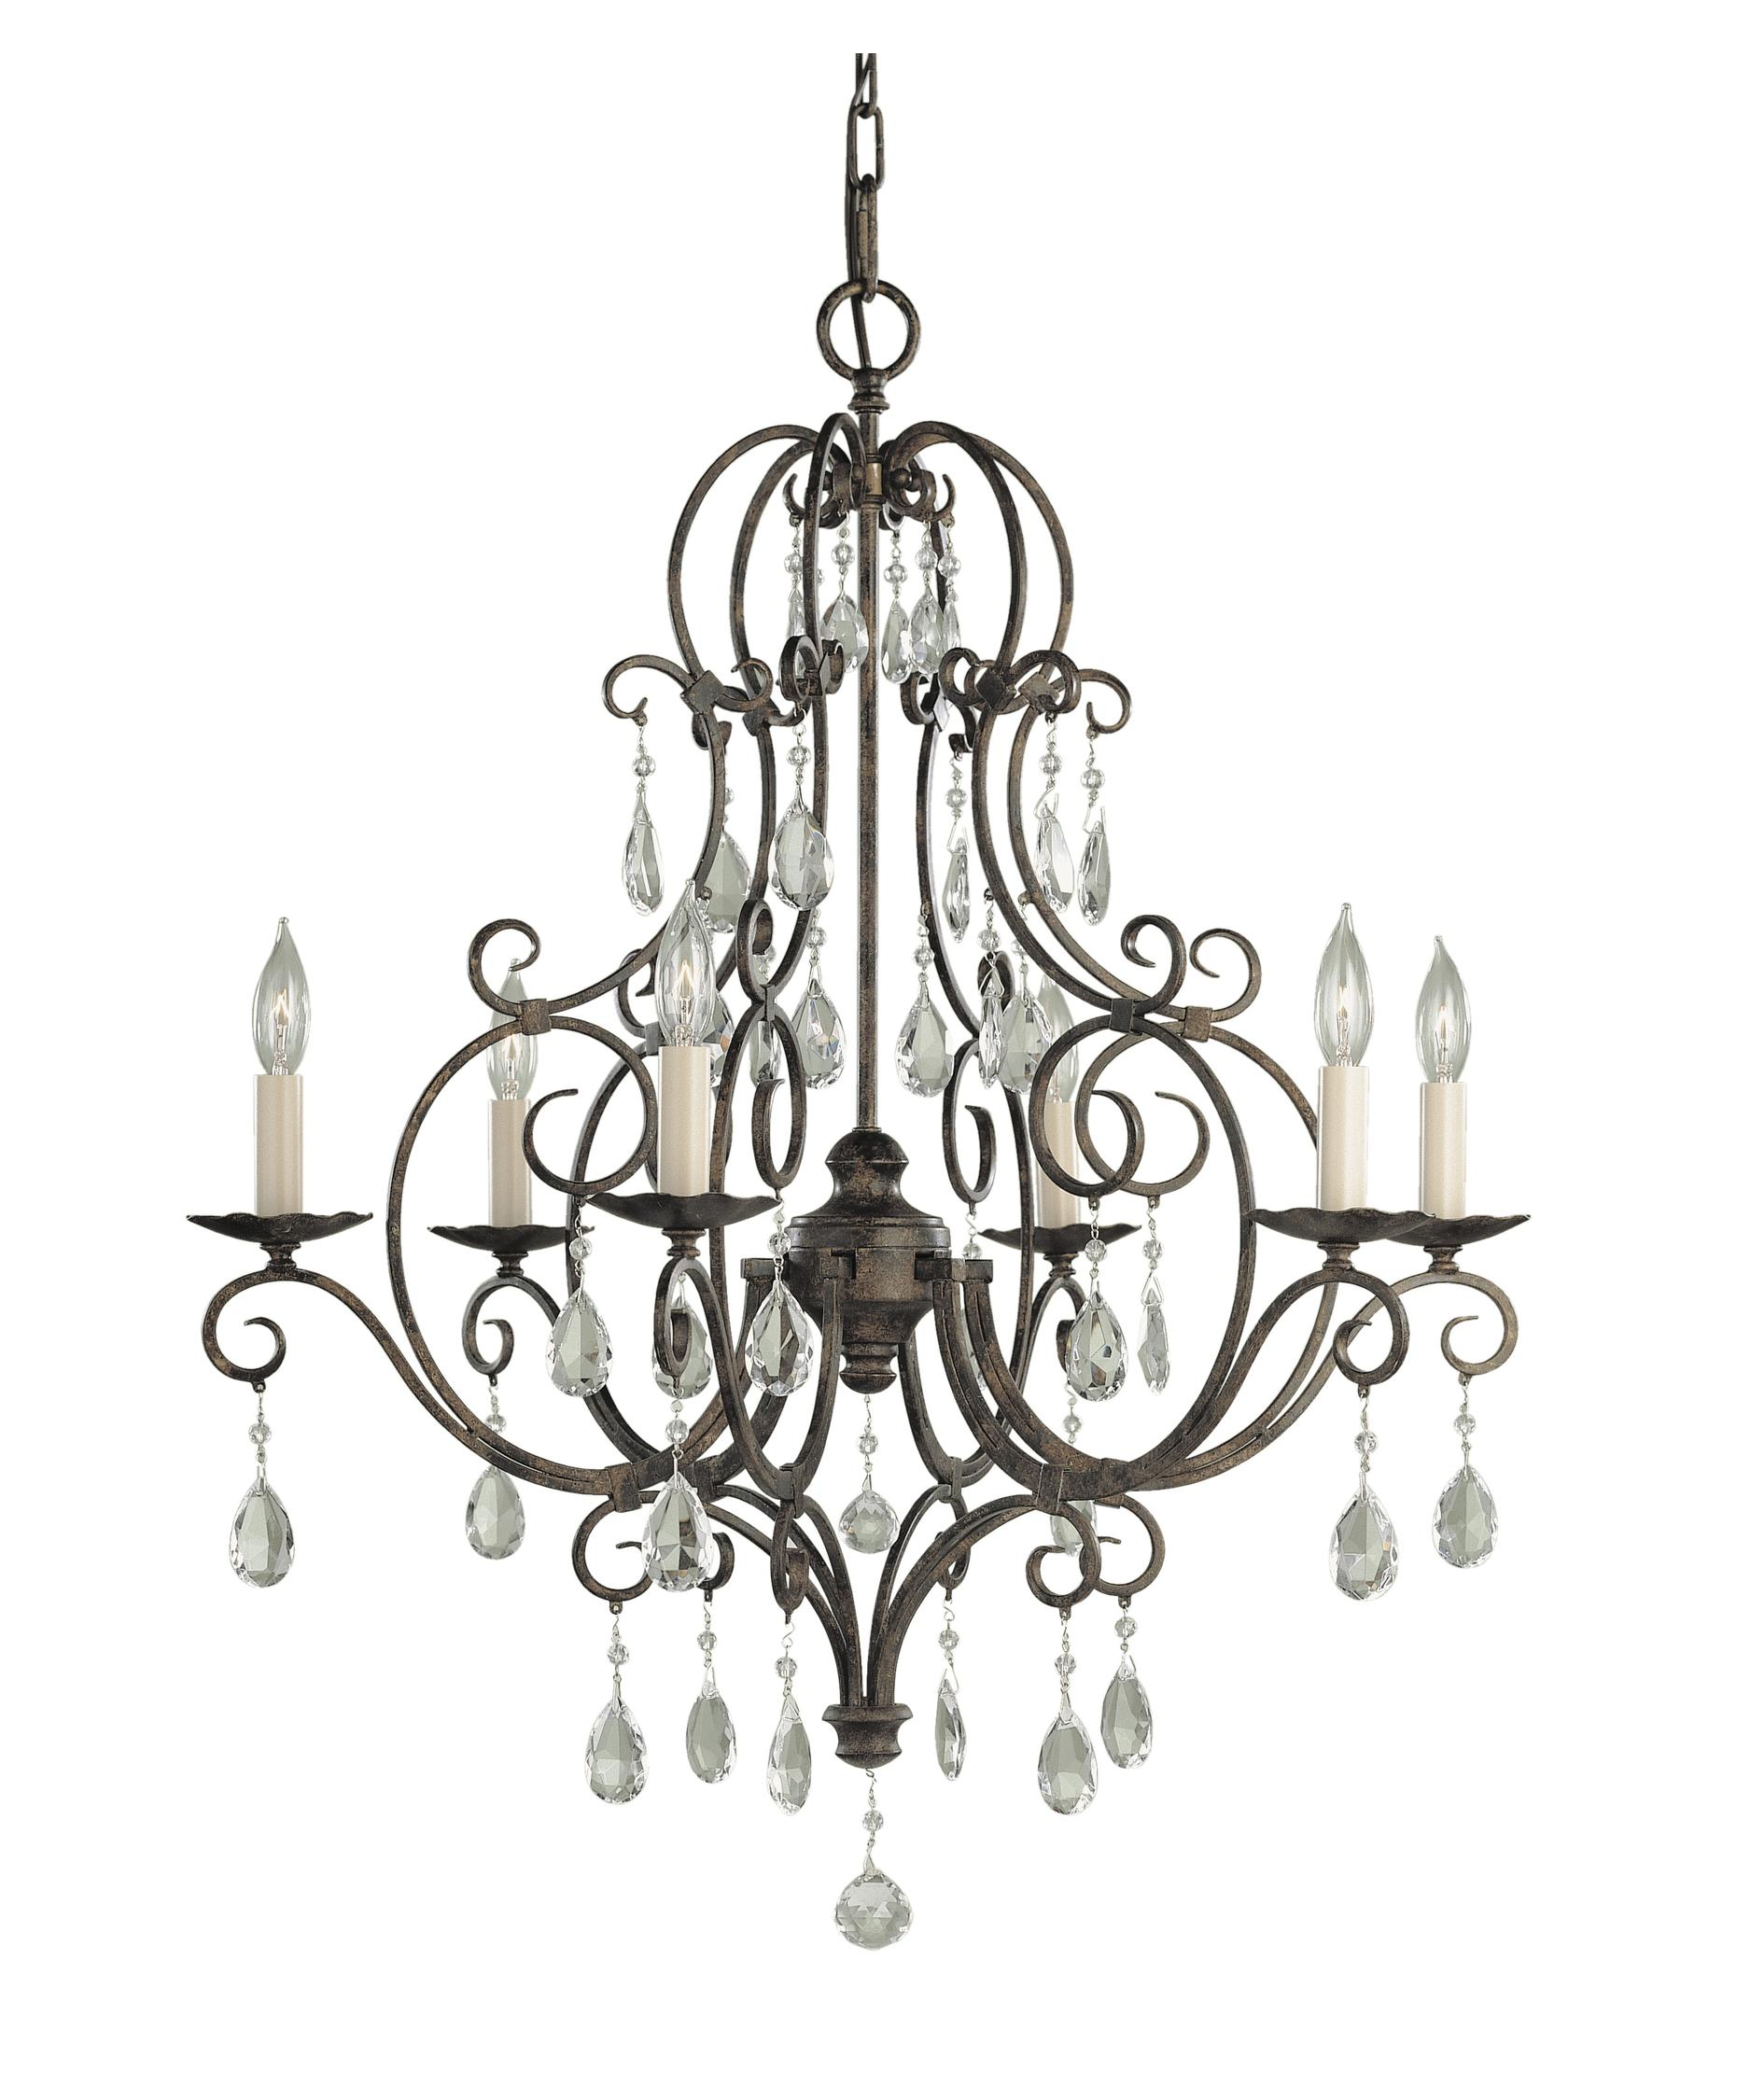 1875x2250 Murray Feiss F1902 6 Chateau 25 Inch Wide 6 Light Chandelier